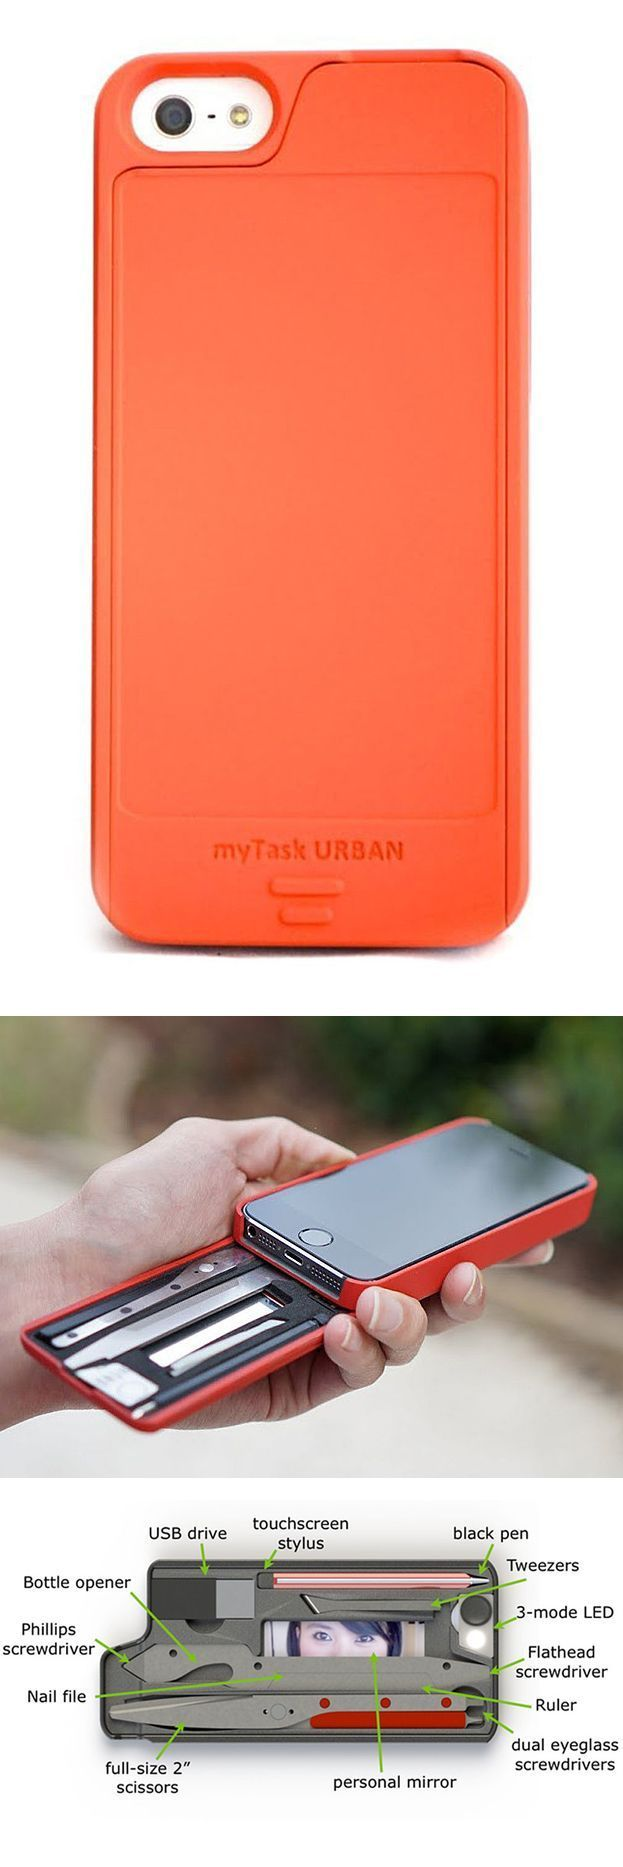 IPhone case with essential everyday tools like a pen, stylus, bottle opener, and screwdriver. Now if only I had an iPhone